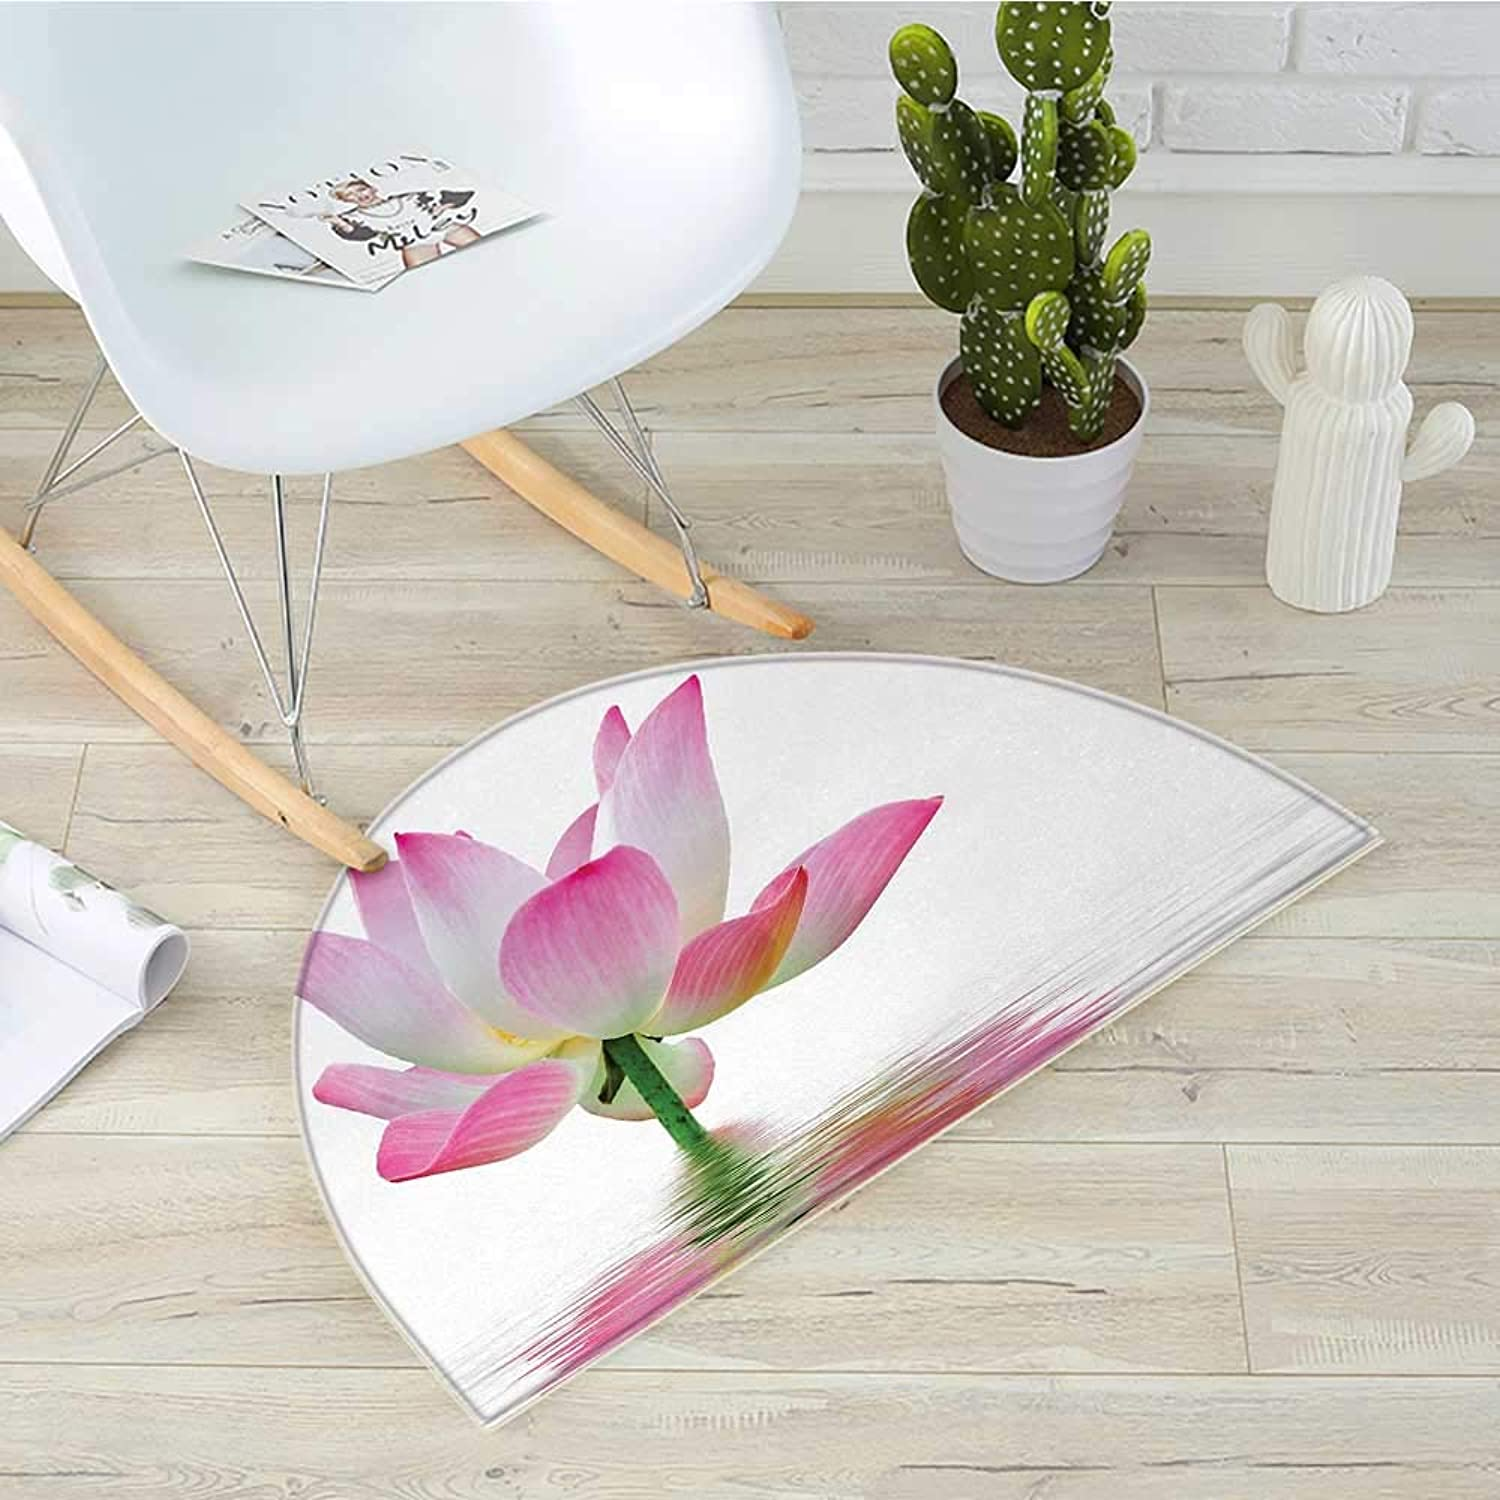 Pink and White Half Round Door mats Lotus Flower in Freshwater Aquatic Nature Relaxation and Spa Theme Bathroom Mat H 23.6  xD 35.4  Pink White Green